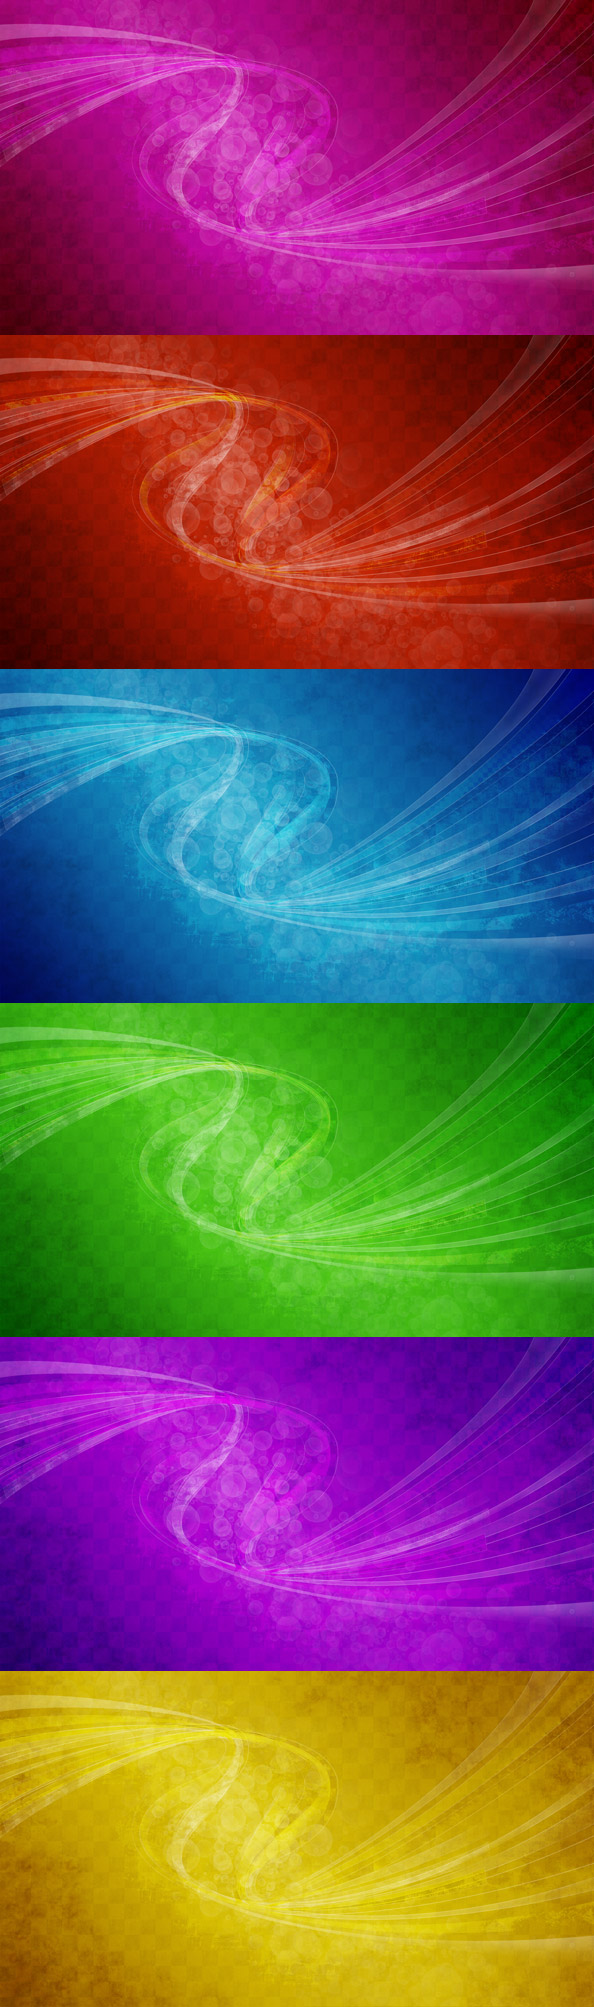 Colorful Backgrounds in High Resolution - Web Backgrounds